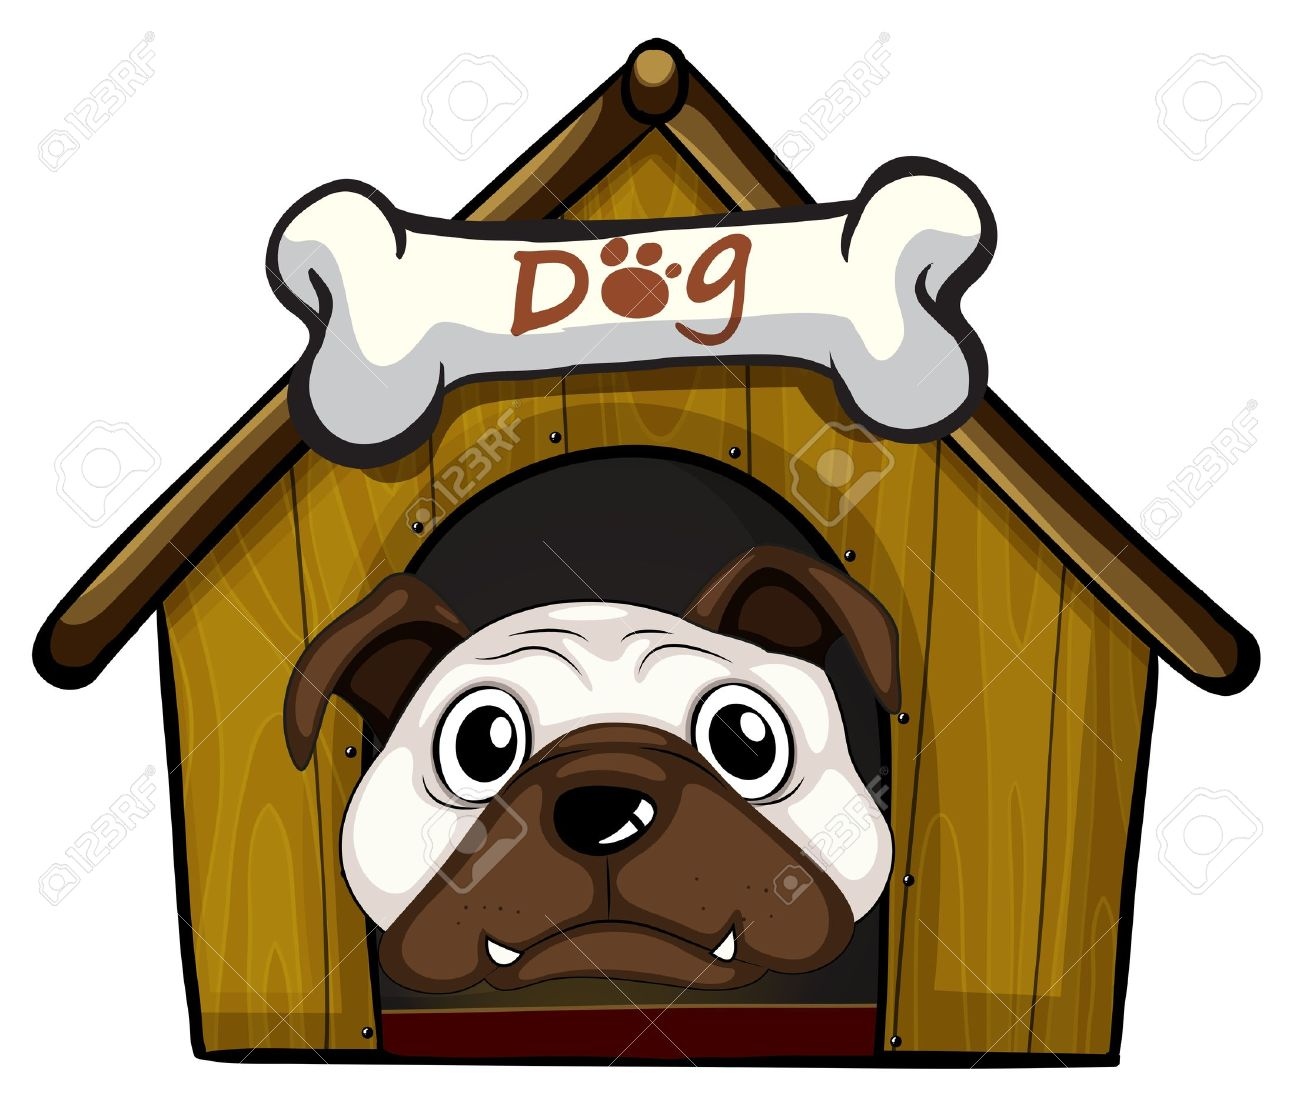 Illustration of a head of a dog Stock Vector - 18210085